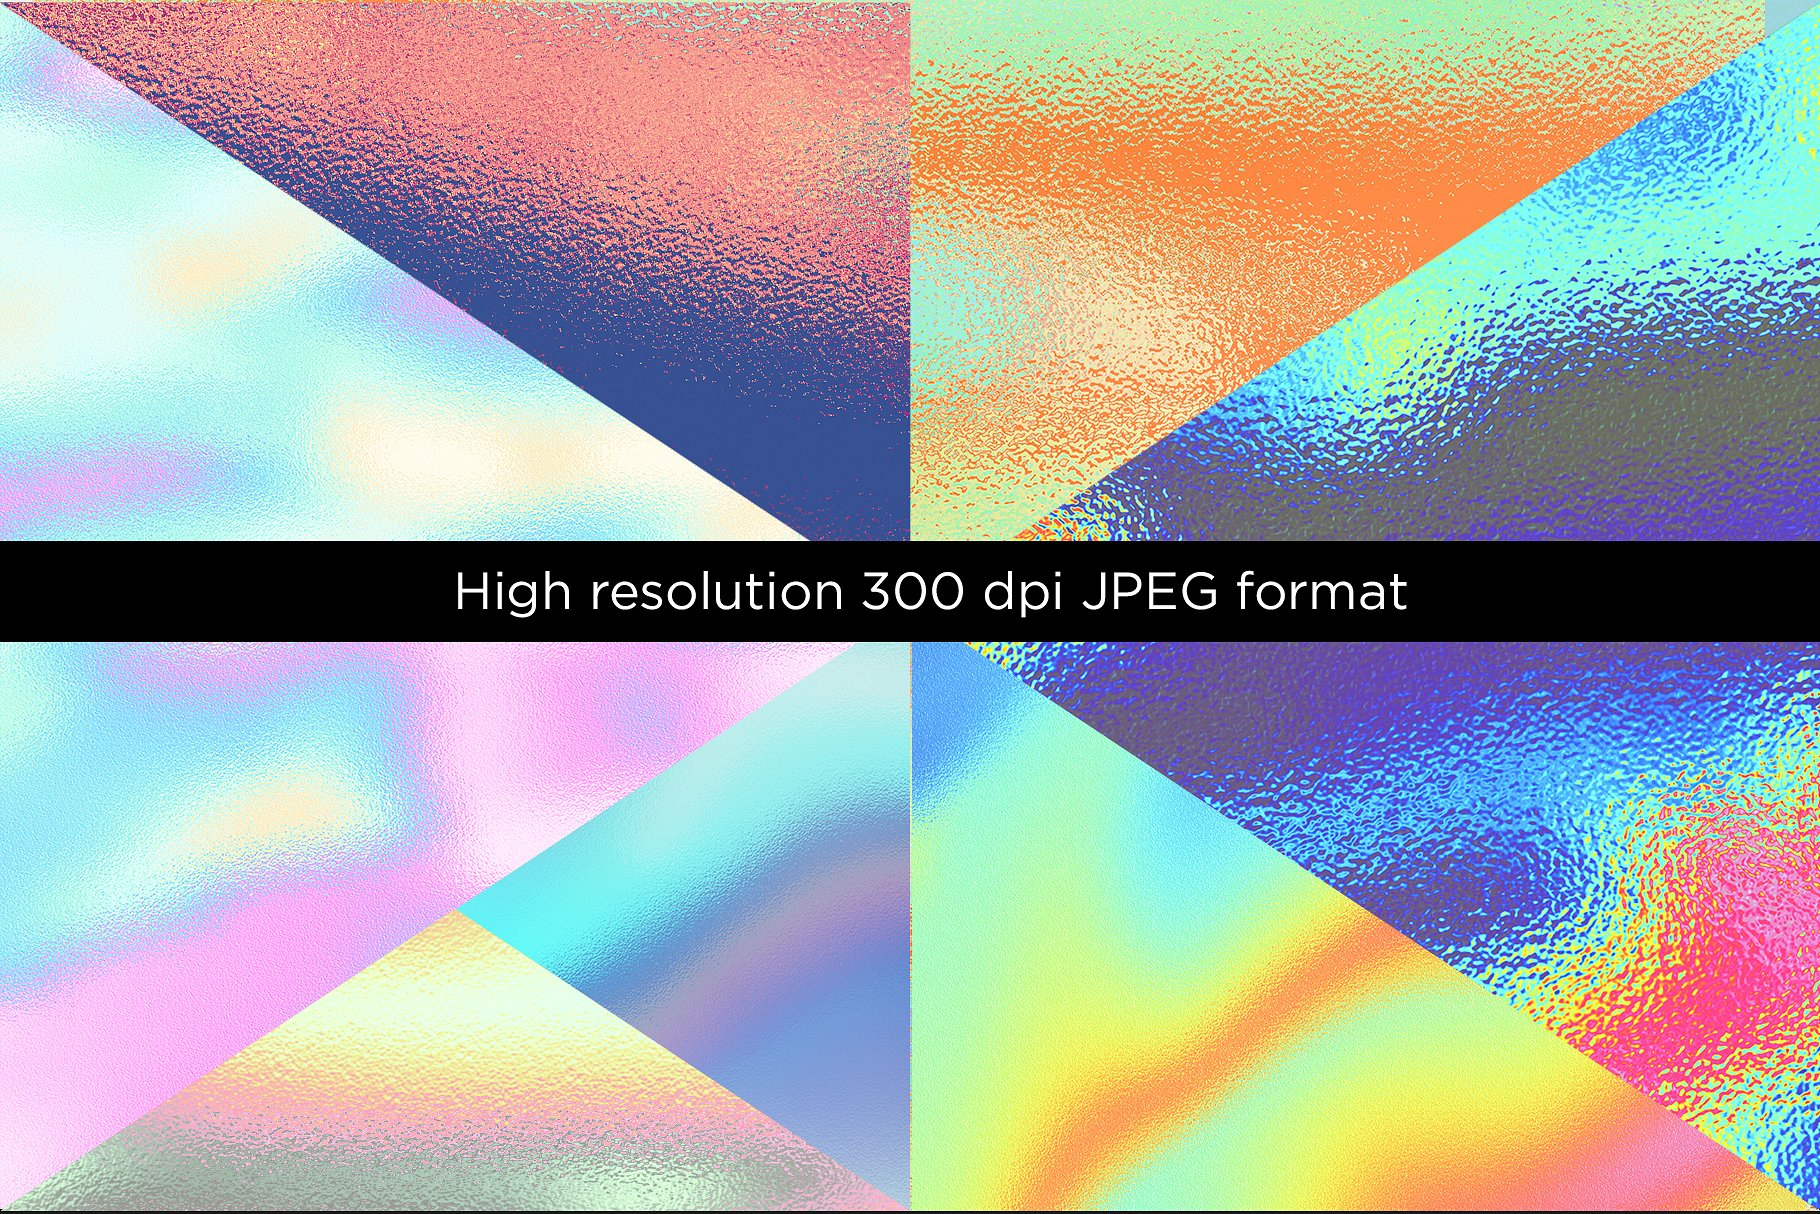 holofoil-holographic-textures4-.jpg